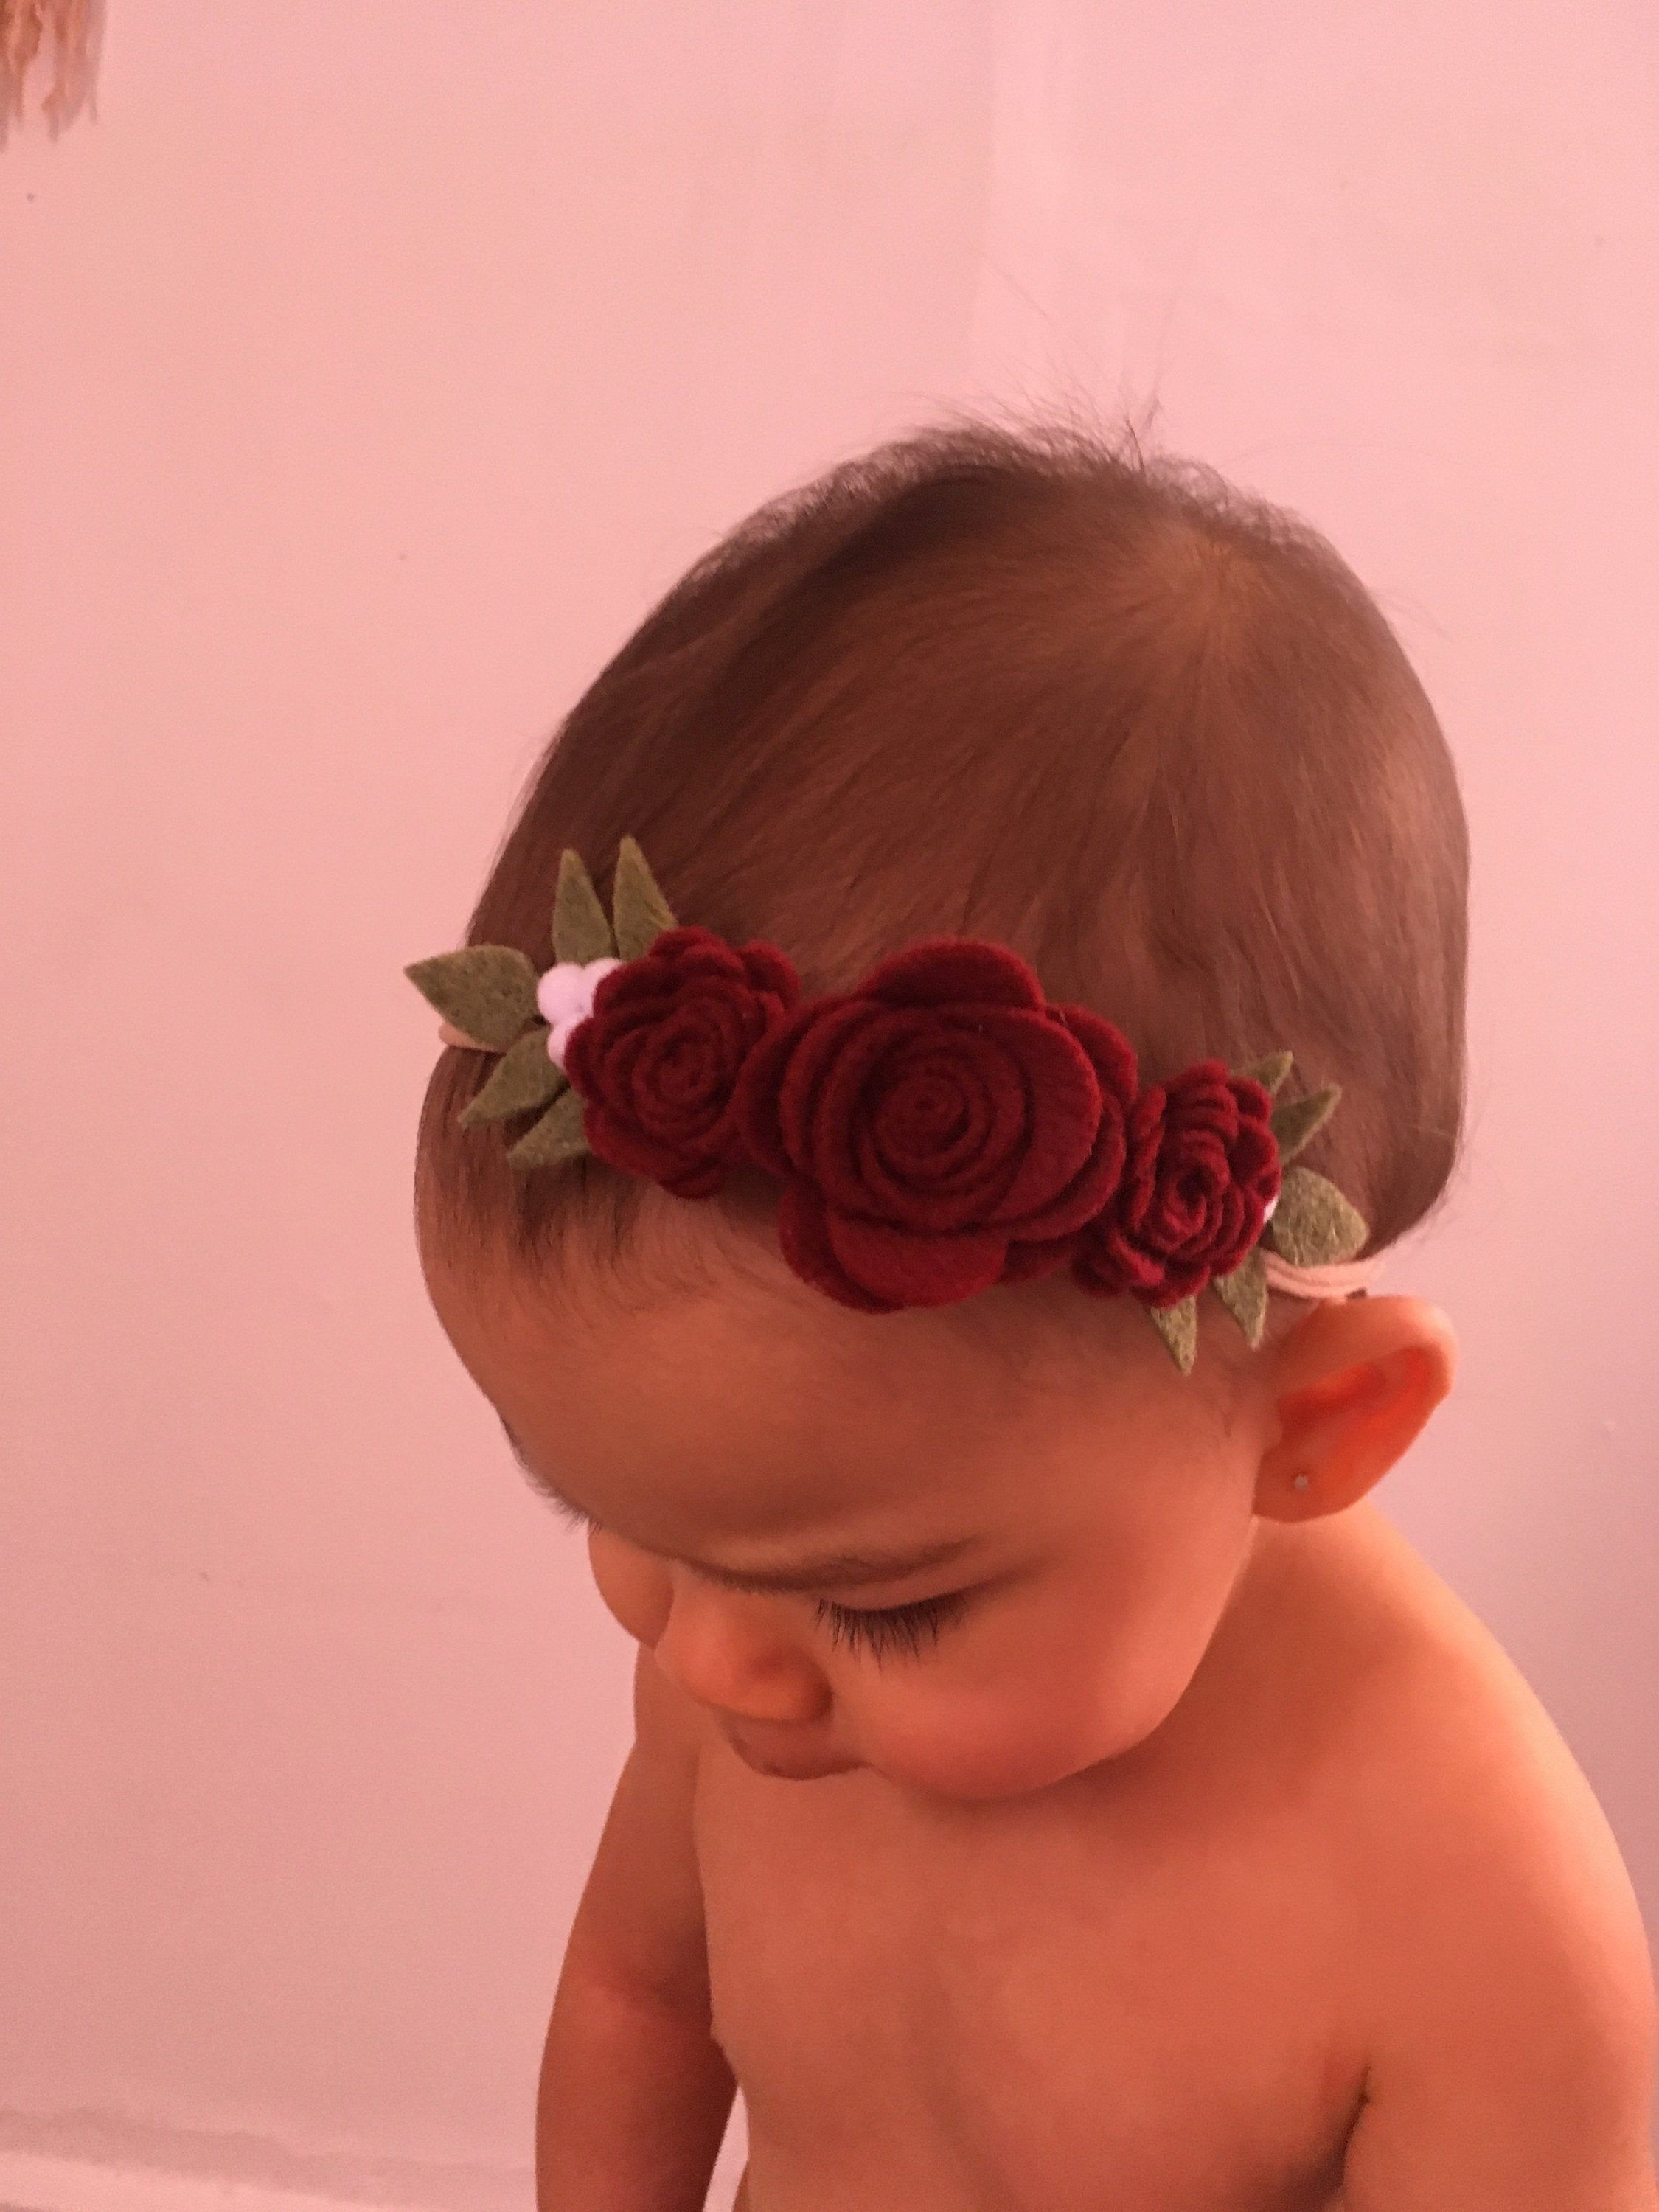 Garnet Red Rose Felt Flower Baby Headband Christmas, Baby Girl Headband, Girl Flower, Baby Headband, Flower Headband, Felt Flower Headband #babygirlheadbands Beautiful Felt Flower Crown Headband for your Baby Girl first portrait, birthday picture, special occasion, wedding or family pictures. Stunning garnet red garland headband. -Color Garnet Red, olive green, white felt balls.  -Size The flower crown measures from flower to leaves 5 long x 2 inches wide. -Finish/ Band  Nude Nylon Headband. I #feltflowerheadbands